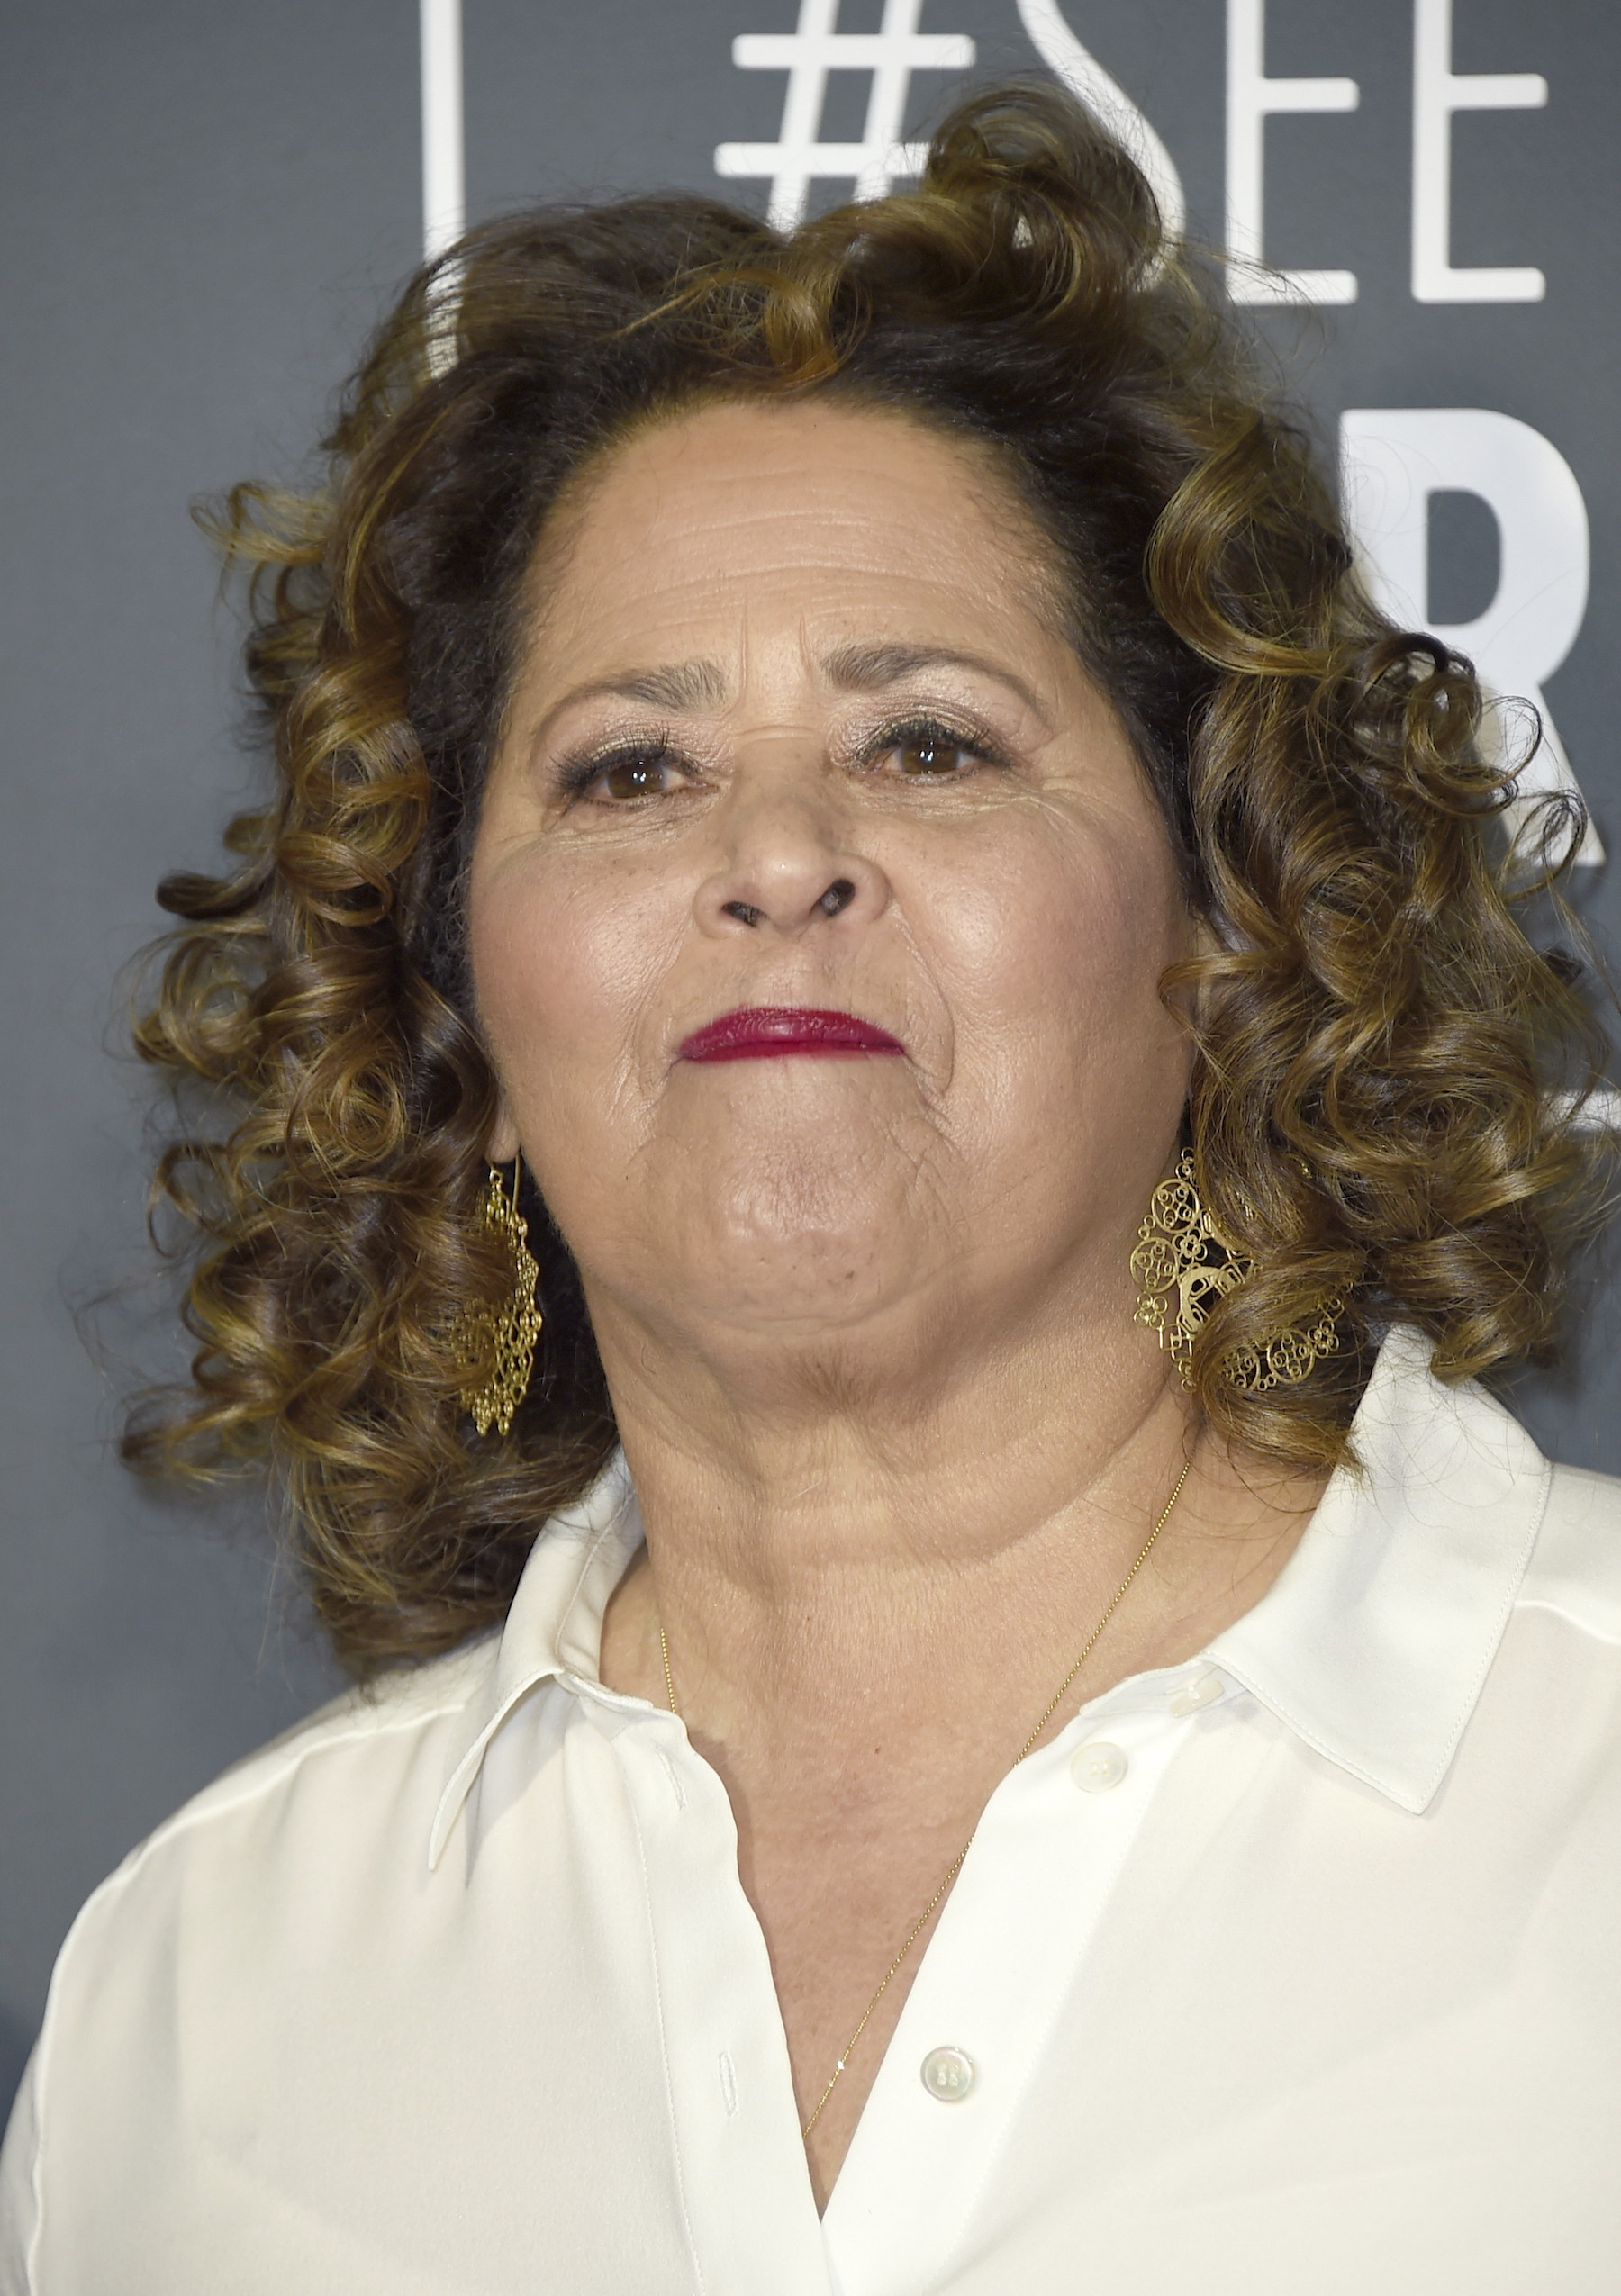 "<div class=""meta image-caption""><div class=""origin-logo origin-image ap""><span>AP</span></div><span class=""caption-text"">Anna Deavere Smith arrives at the 24th annual Critics' Choice Awards on Sunday, Jan. 13, 2019, at the Barker Hangar in Santa Monica, Calif. (Jordan Strauss/Invision/AP)</span></div>"